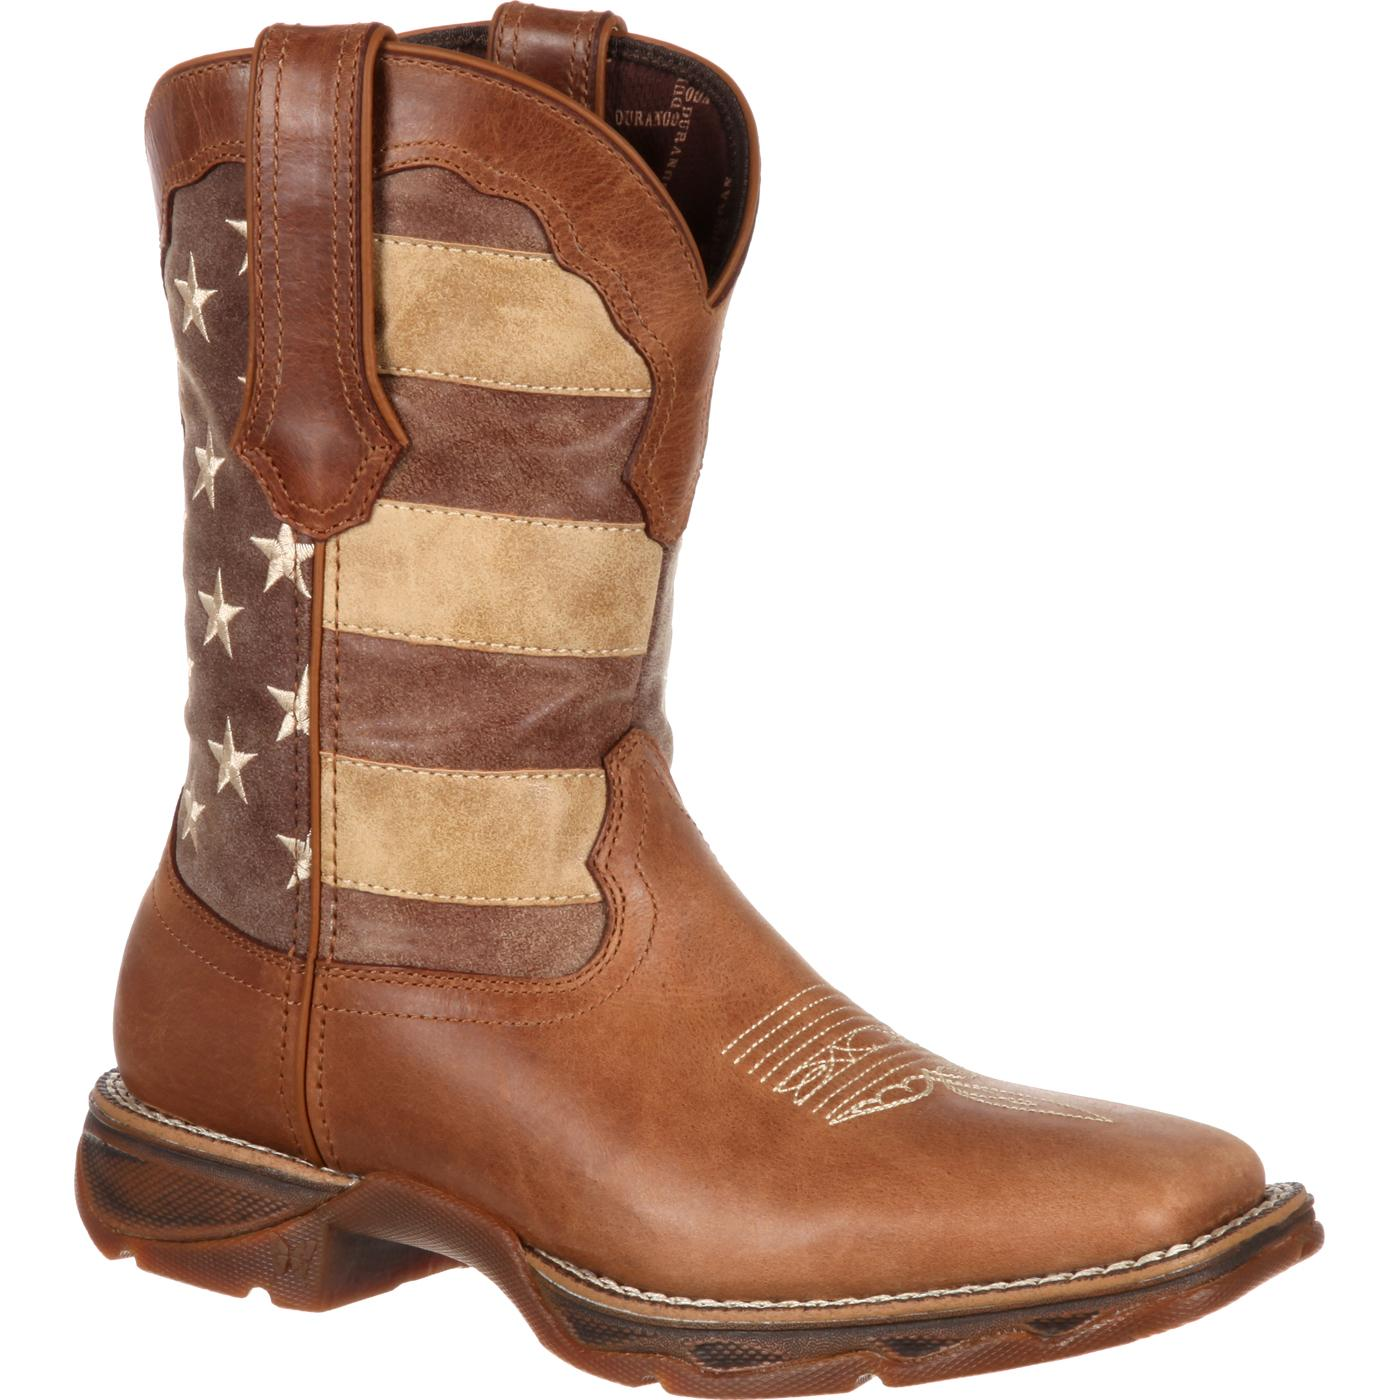 Women's DRD0107 Boot Brown/Faded Union Flag 9 M US